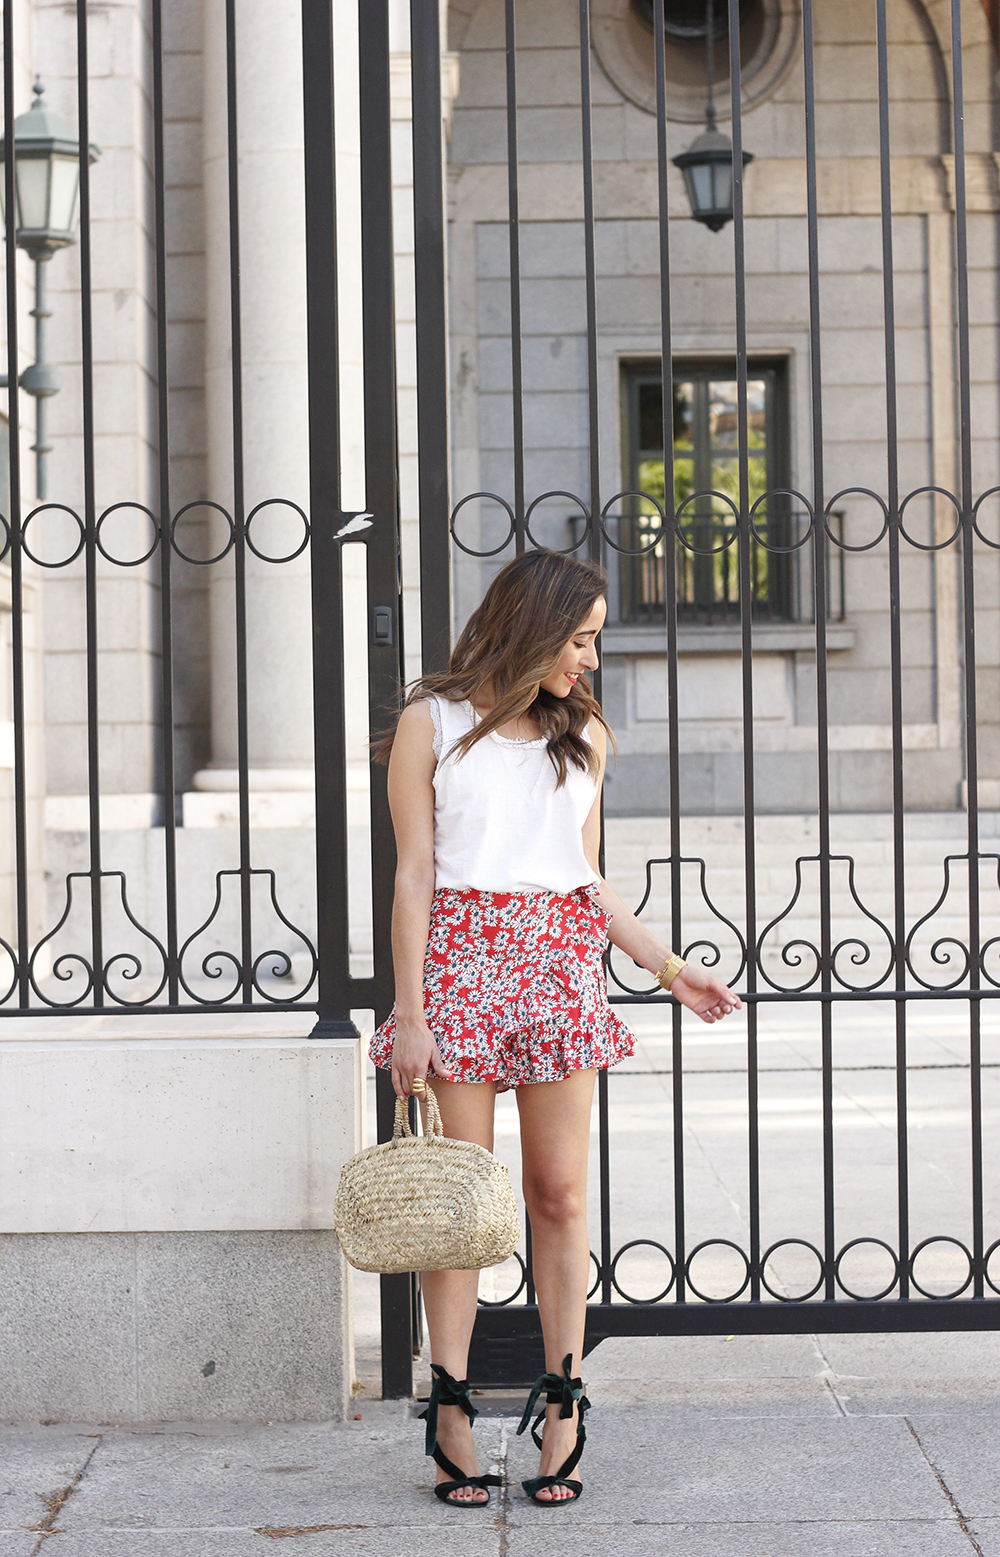 Velvet sandals floral skirt summer outfit style fashion01